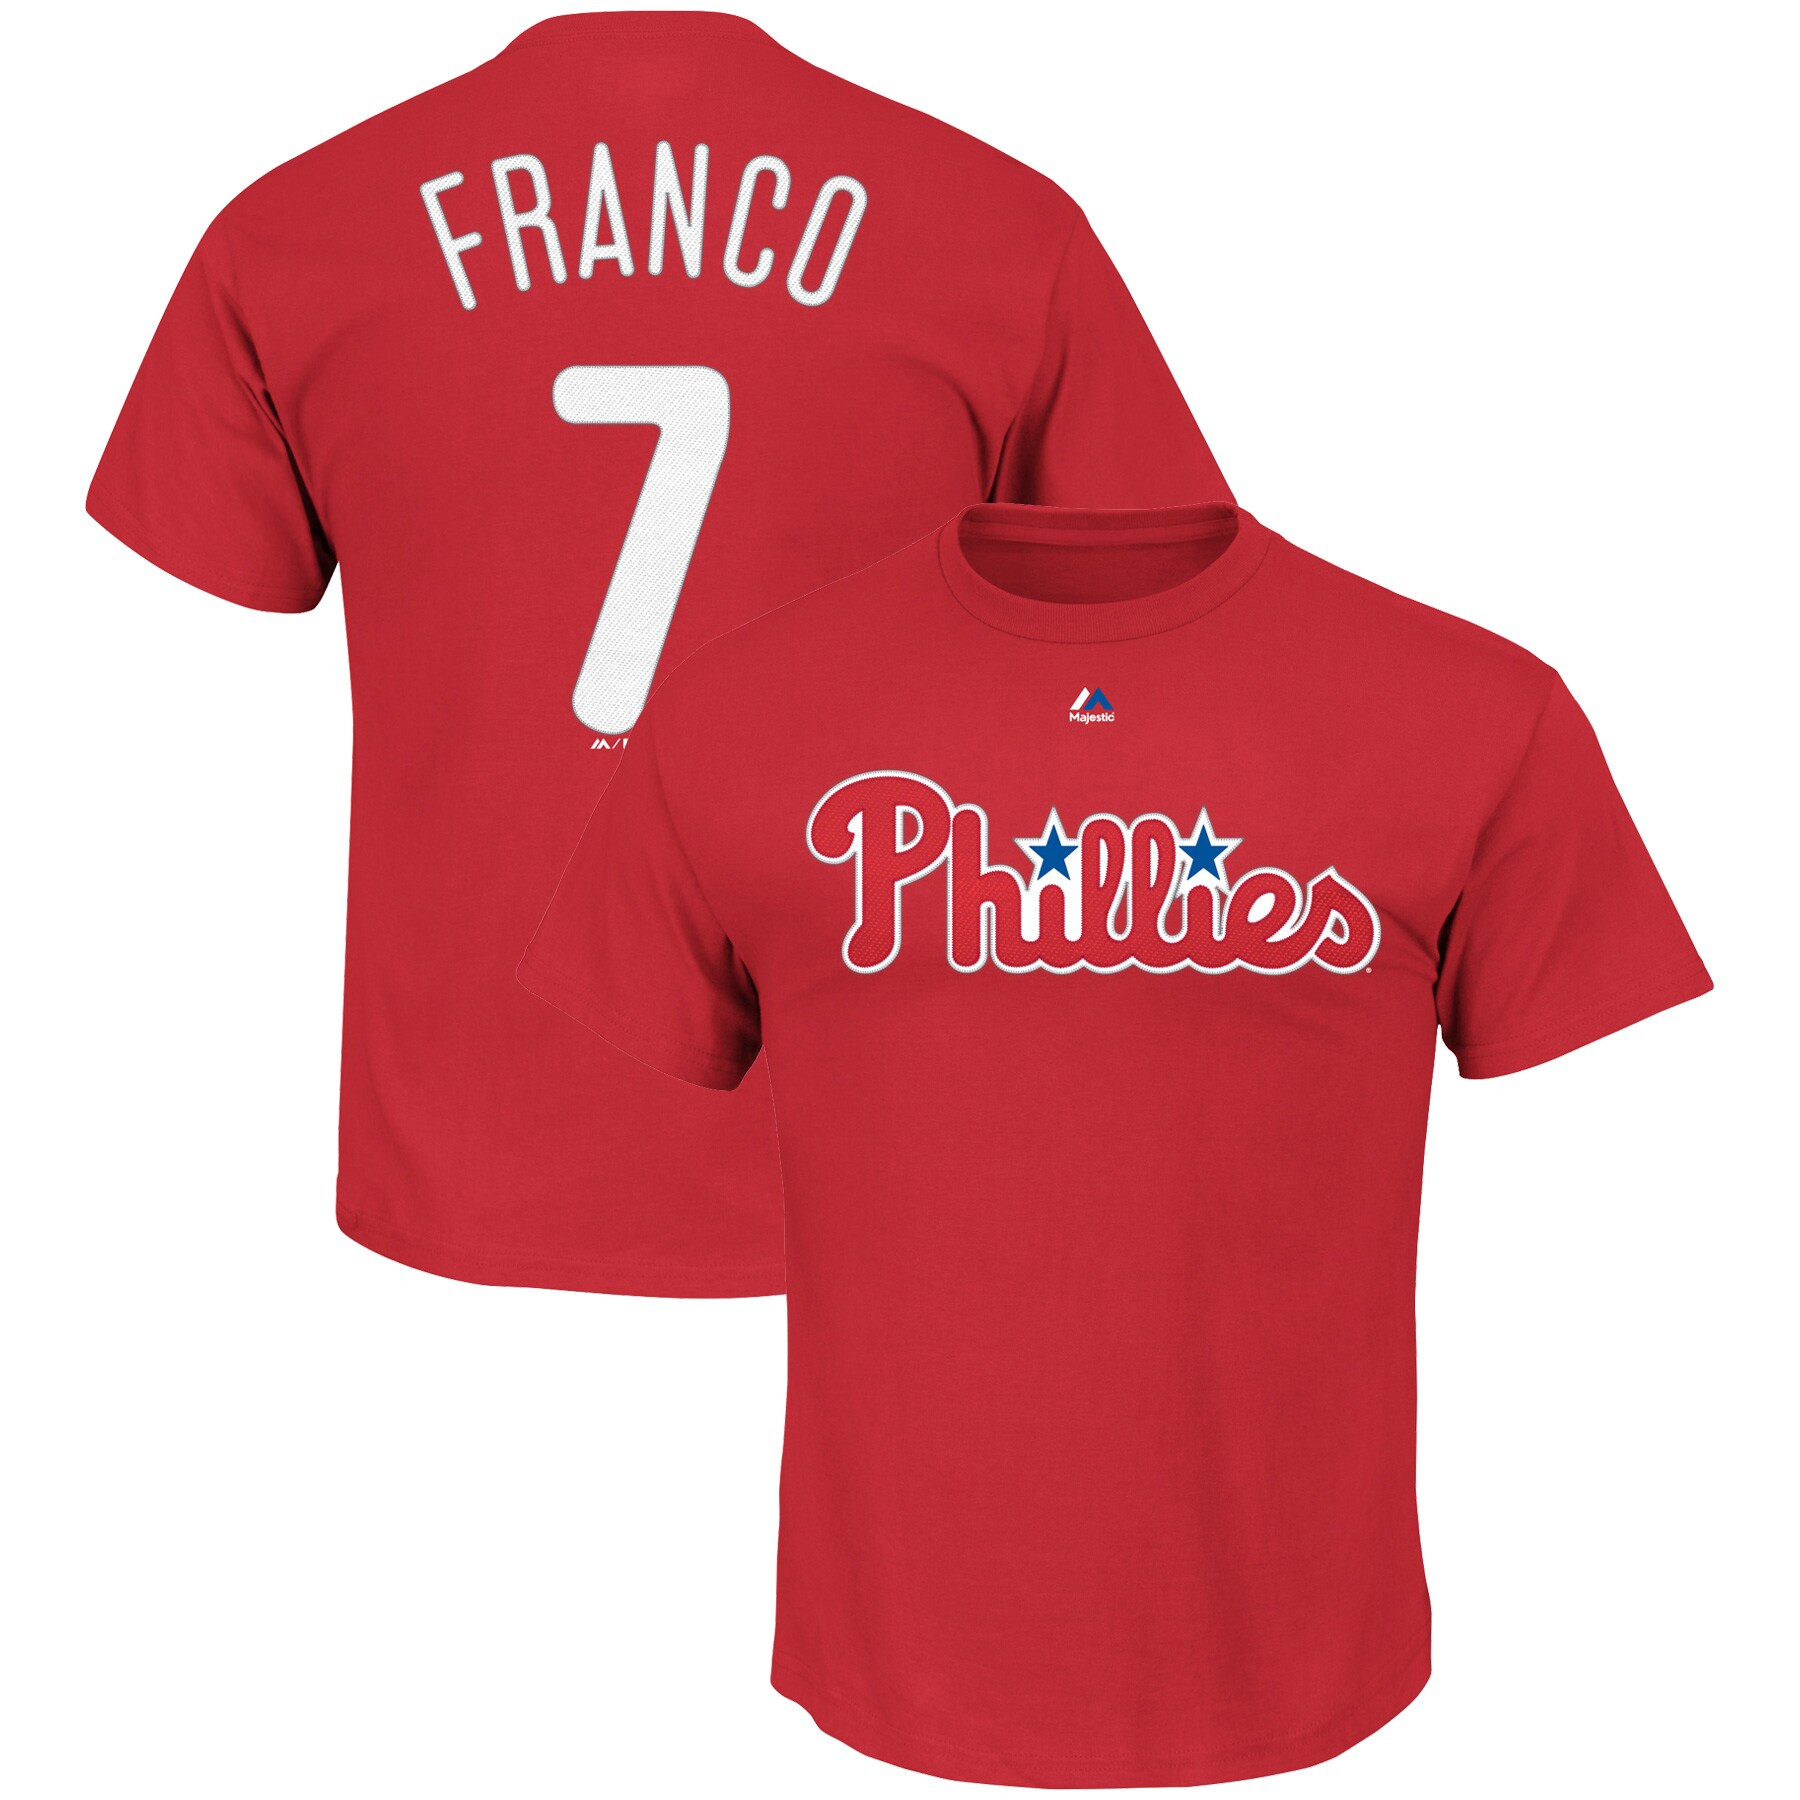 Maikel Franco Philadelphia Phillies Majestic Big & Tall Official Player T-Shirt - Red